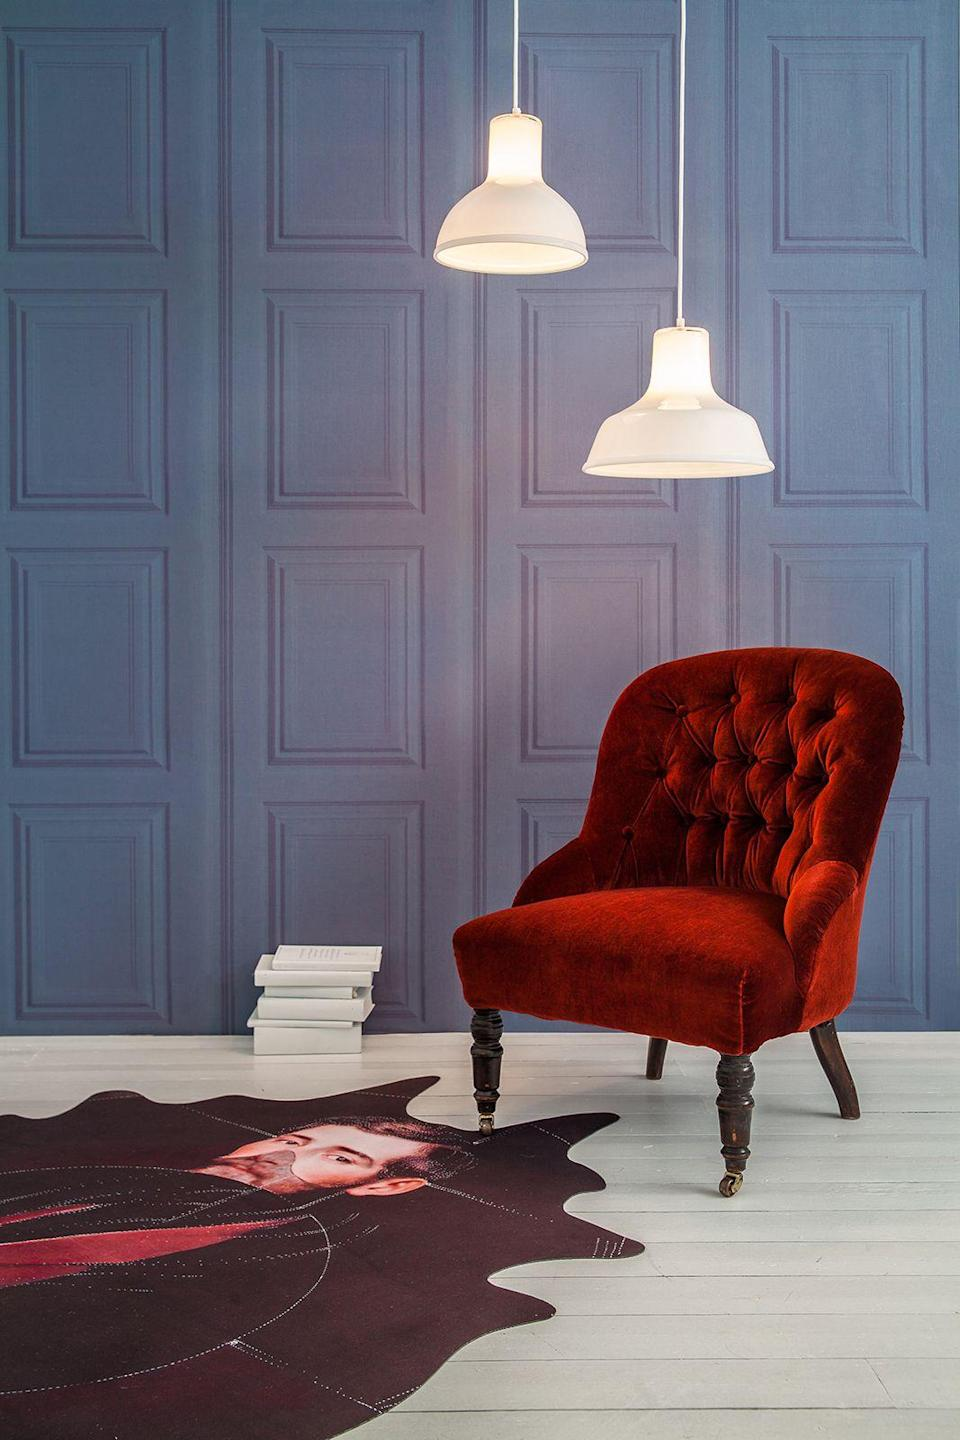 """<p>Channel gentlemen's clubs with a roll or two of this panelled-effect wallpaper. Its rich teal tones will add a sophisticated touch to any reading corner. Best served with a velvet armchair and a G&T.</p><p><strong>Young & Battaglia</strong> Petrol Panelling Wallpaper, £70 for 250cm, available at <a href=""""http://www.mineheart.com/petrol-panelling-wallpaper/"""" rel=""""nofollow noopener"""" target=""""_blank"""" data-ylk=""""slk:Mineheart"""" class=""""link rapid-noclick-resp"""">Mineheart</a></p>"""